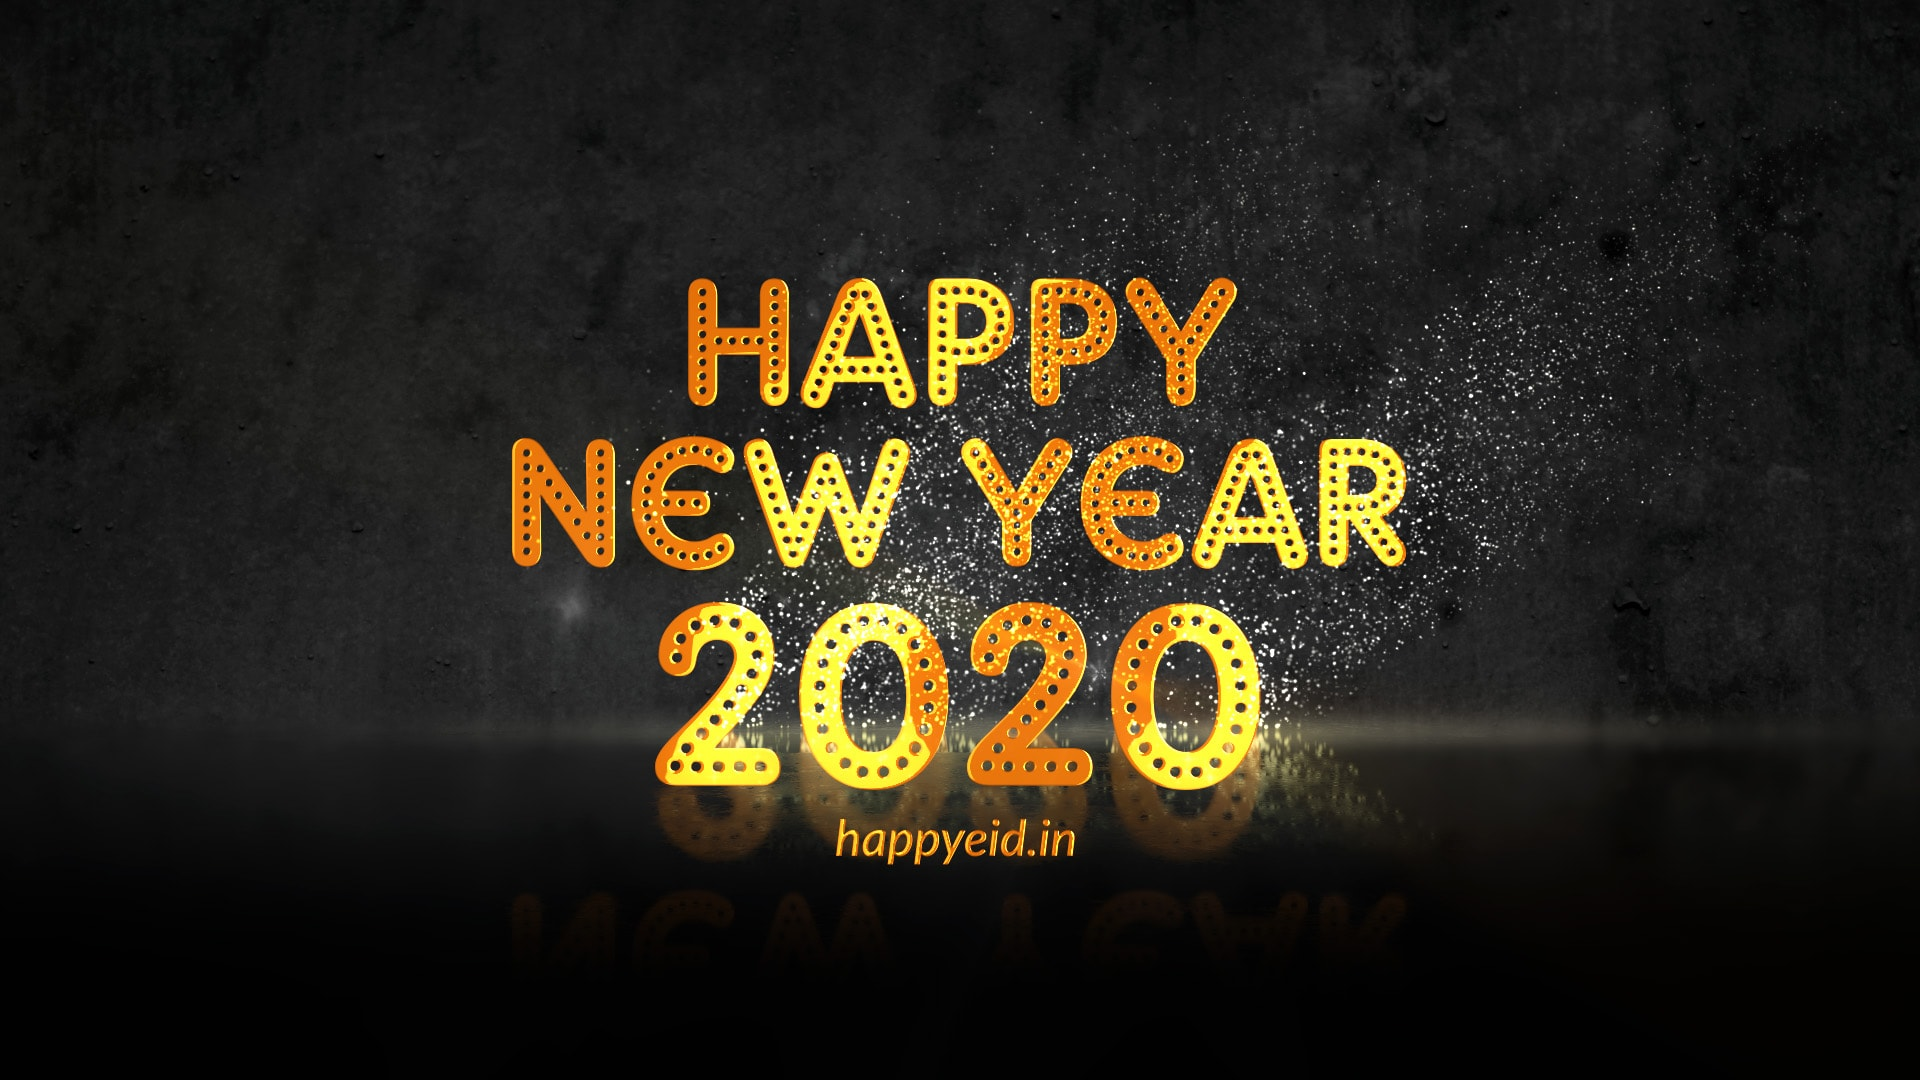 Happy New Year 2020 Gif – Wishes & Greetings